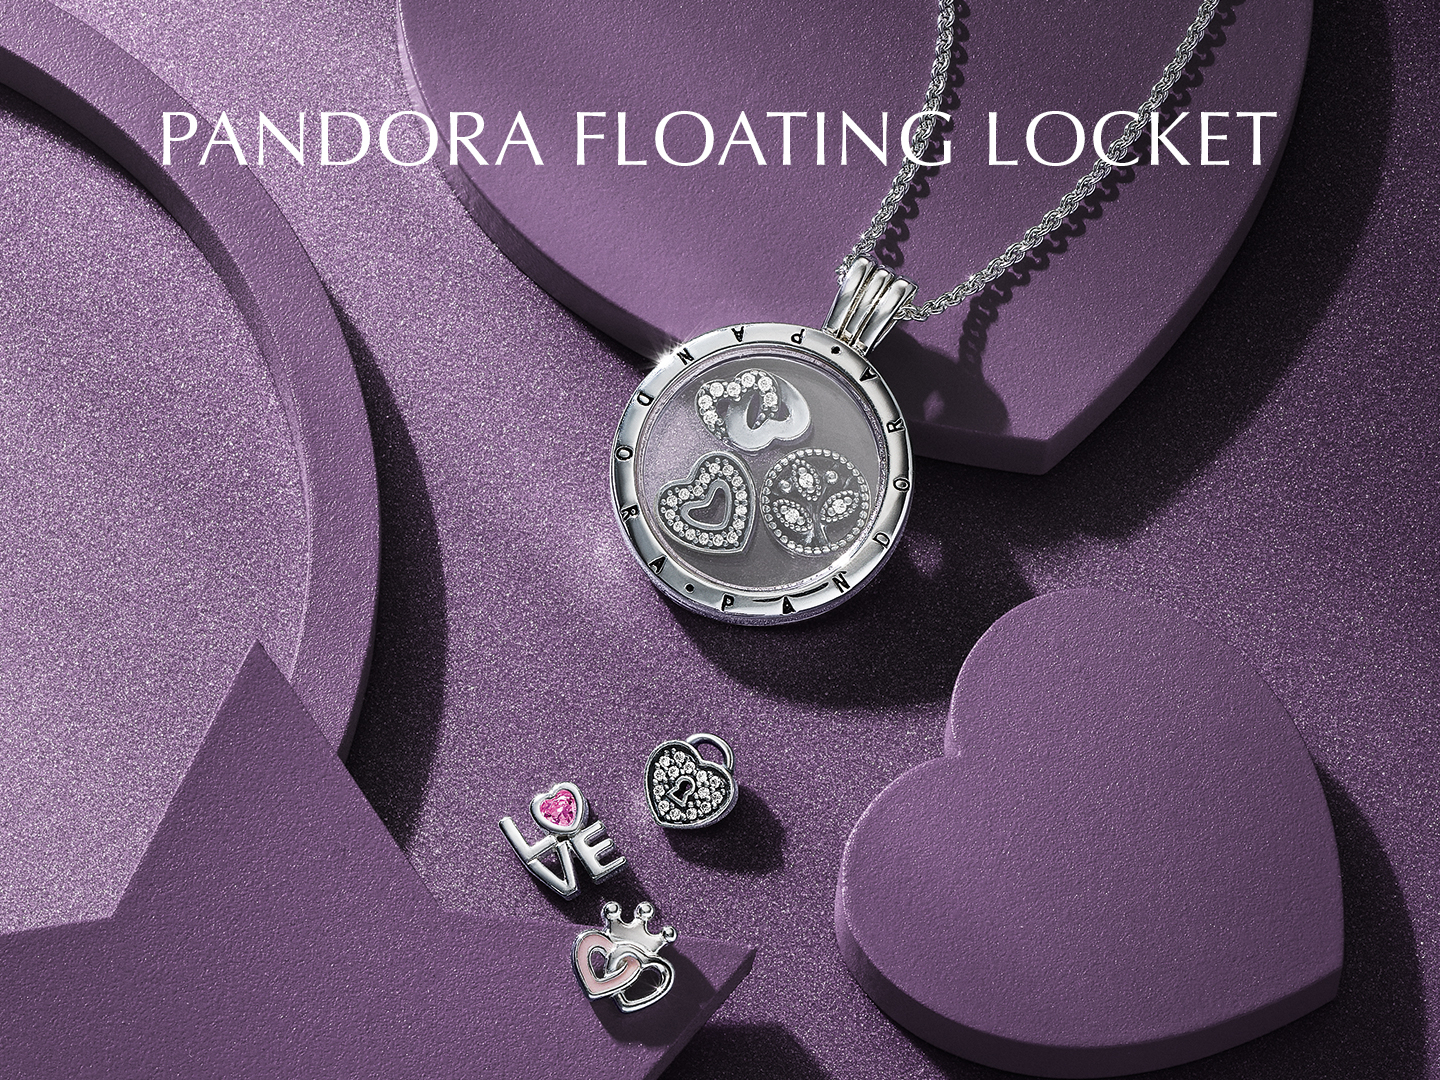 Pandora Floating Locket | Official Online Store Hong Kong | Pando Pertaining To Most Up To Date Pandora Lockets Logo Heart Dangle Charm Necklaces (View 11 of 25)